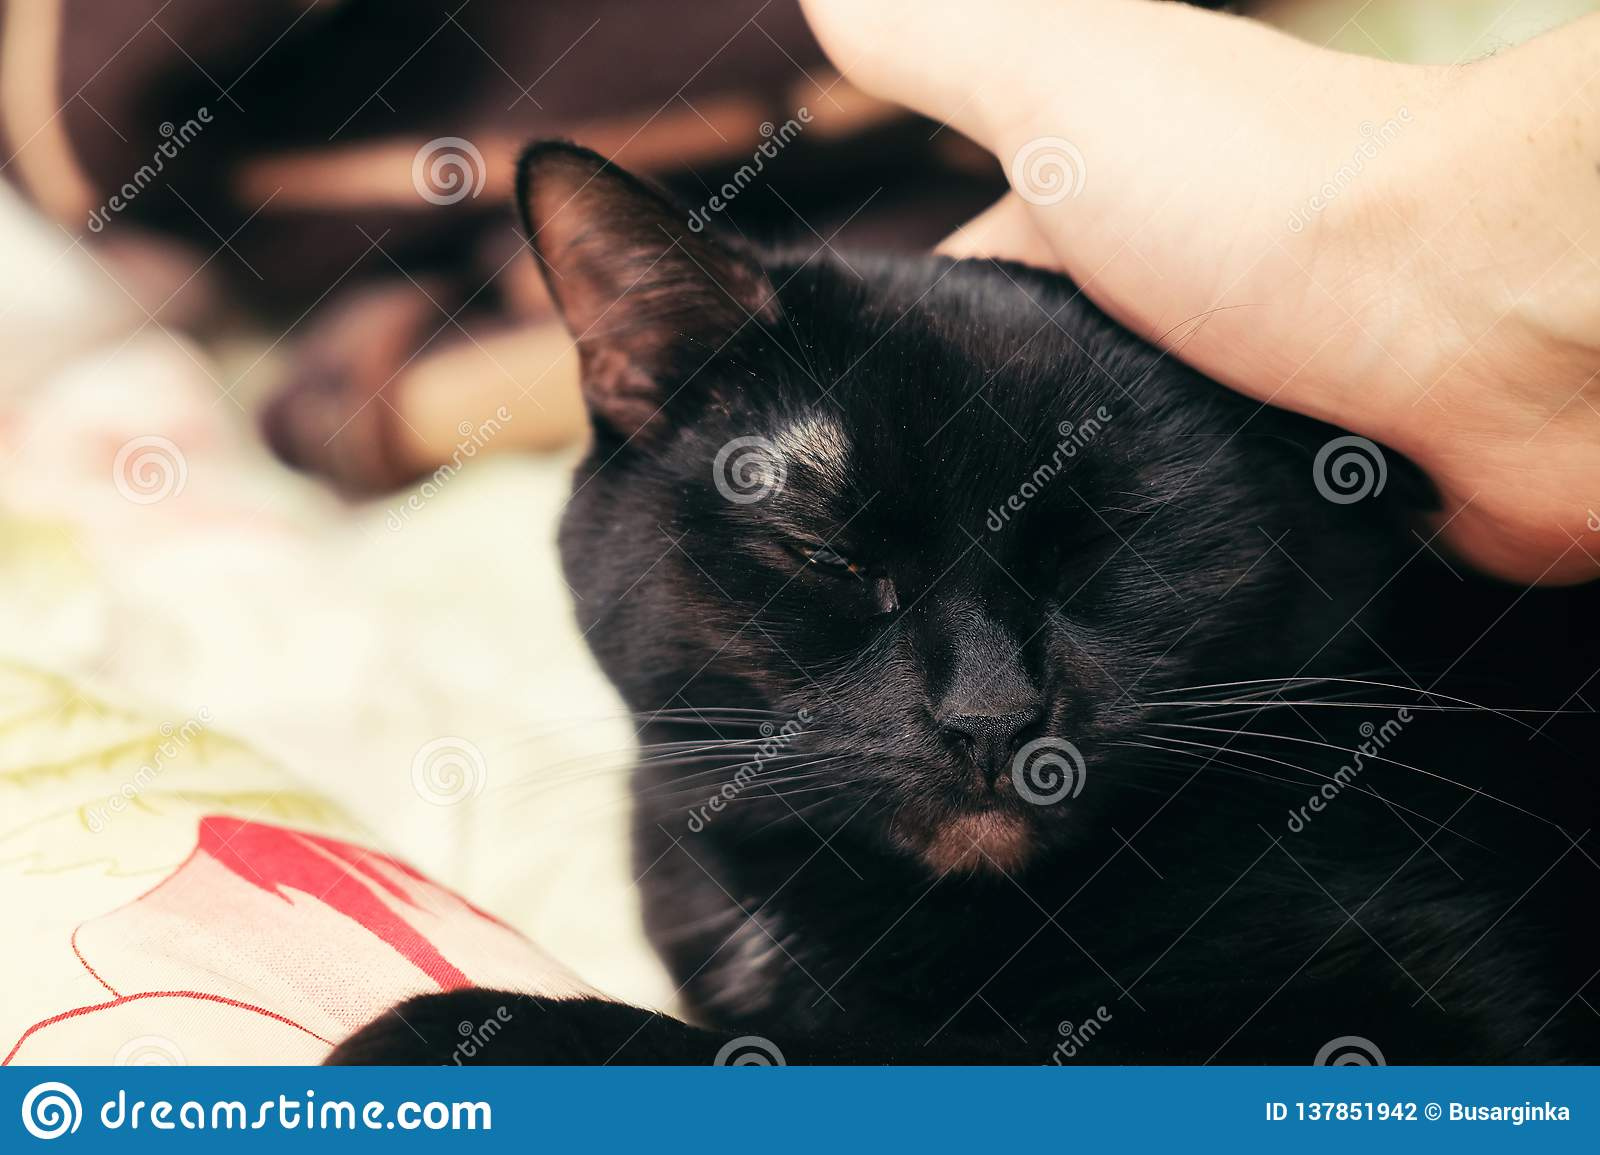 Black cat being petted on the head